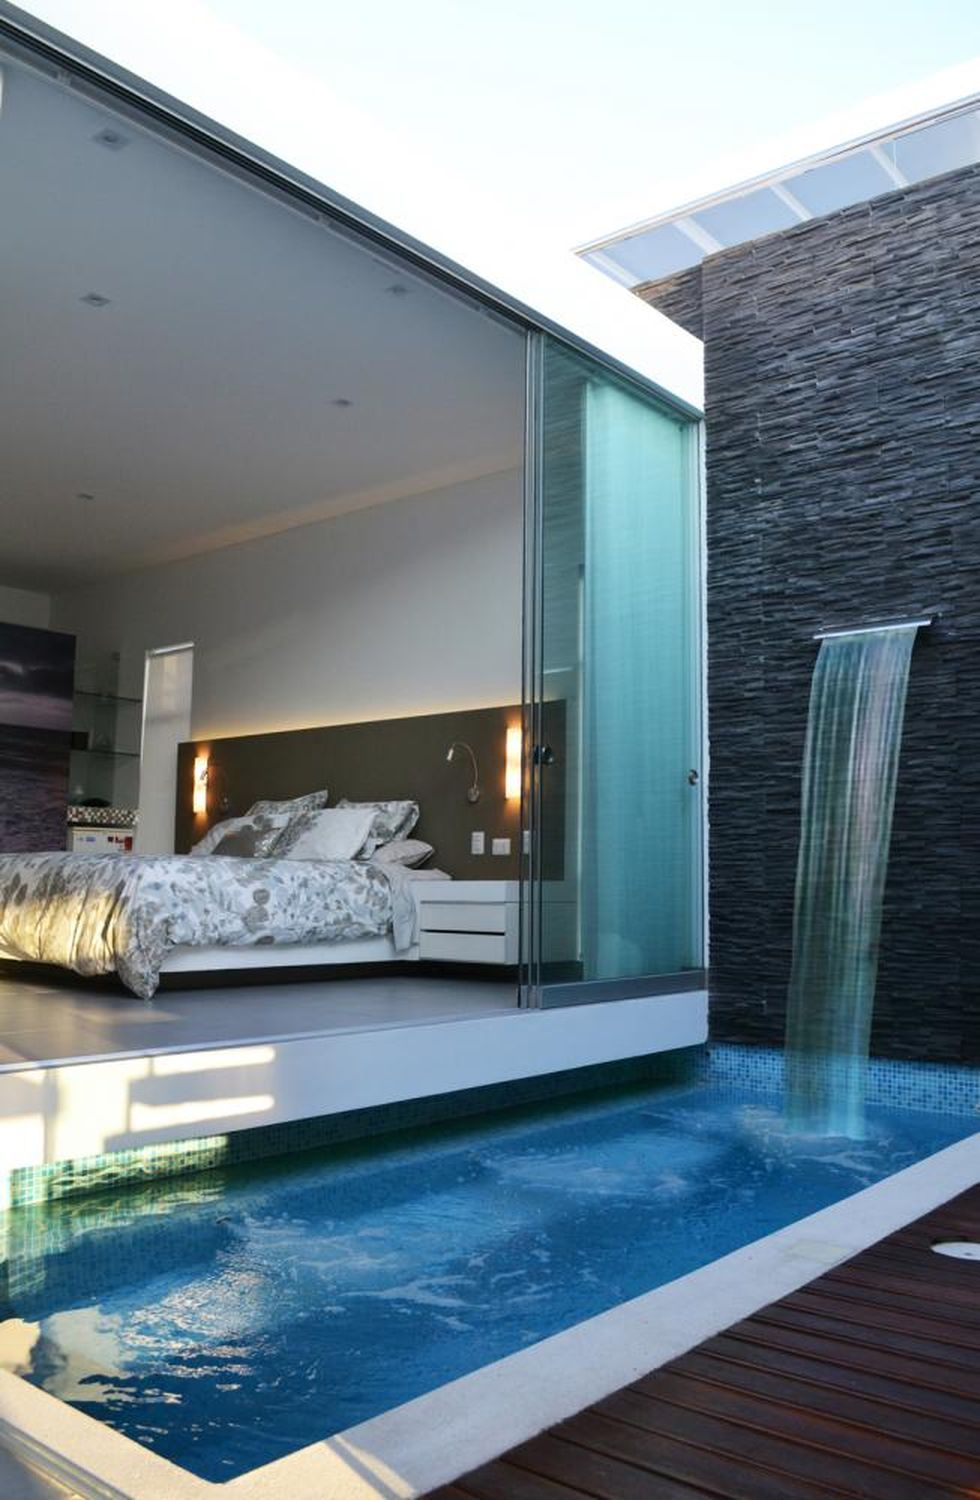 Cool Modern Bedroom Design Ideas 68 Hoommy Com